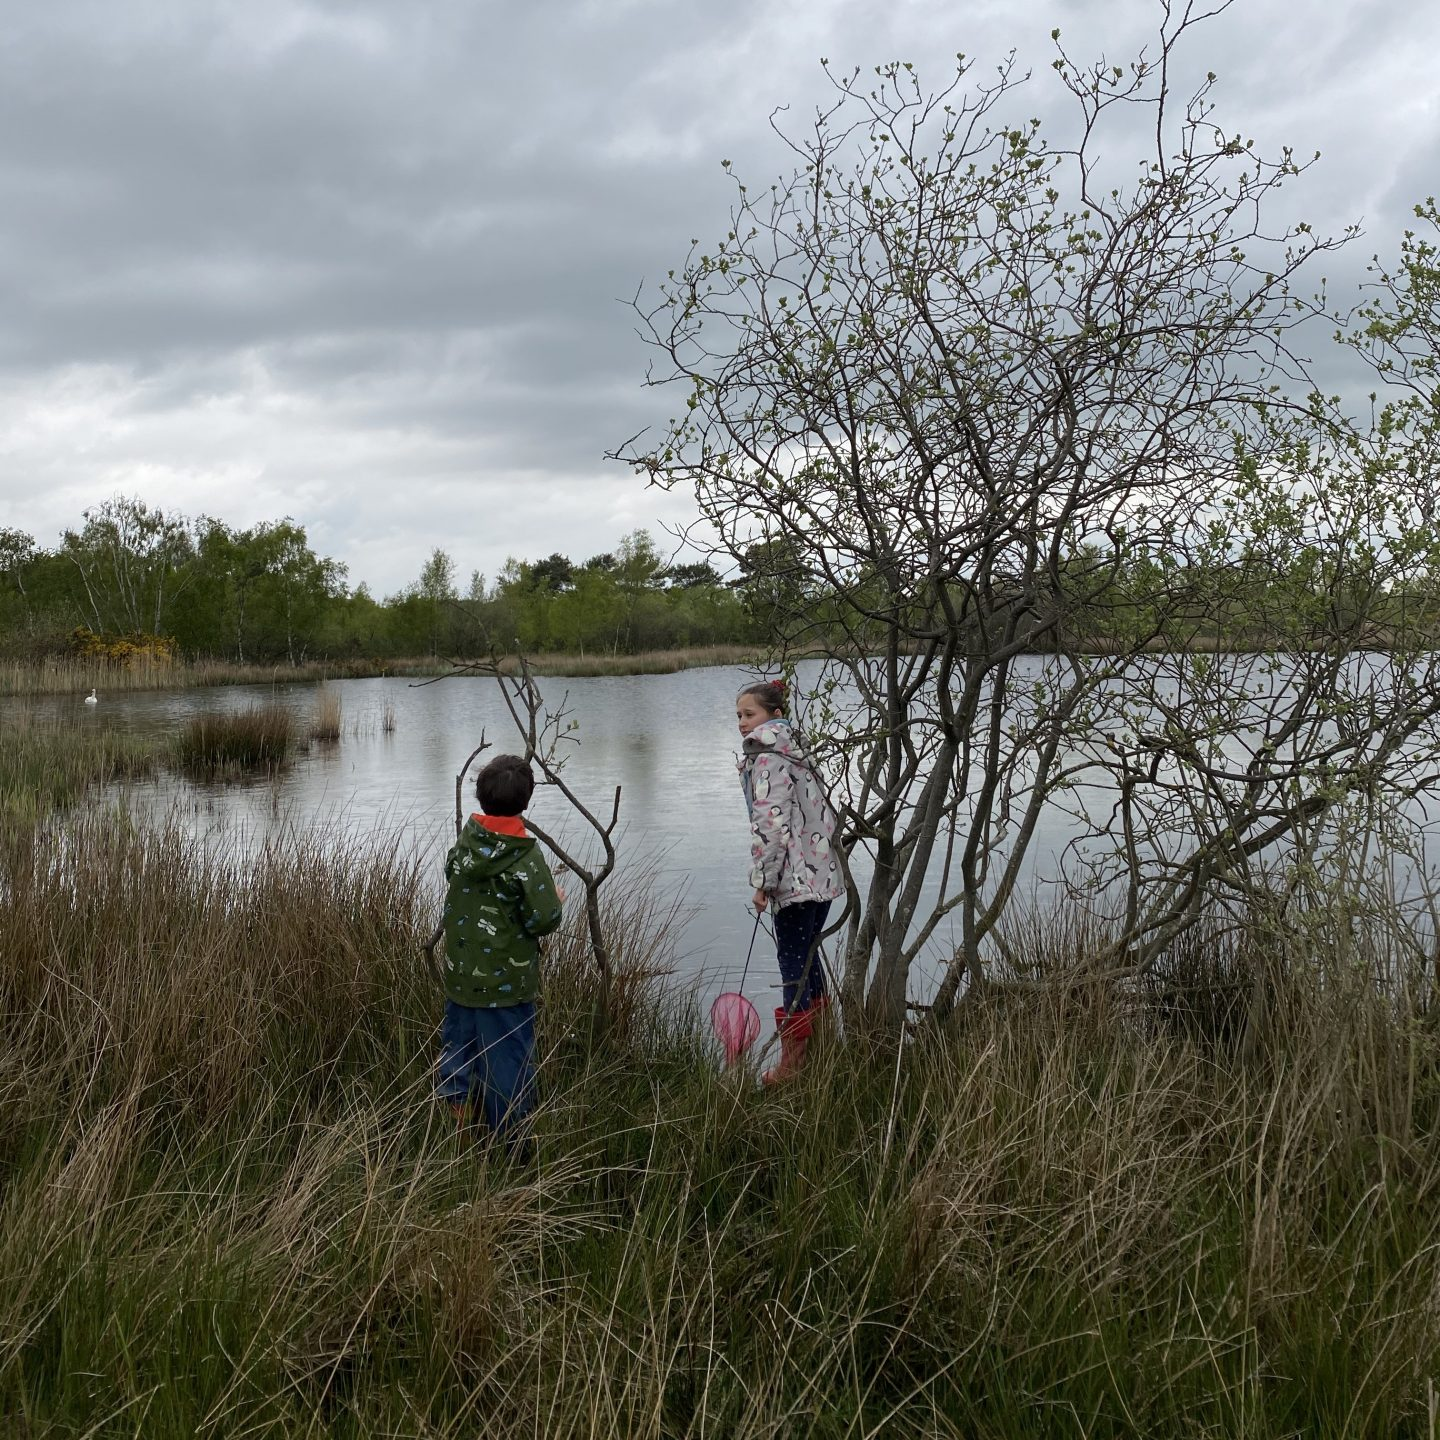 two children out in nature by a pond during lockdown